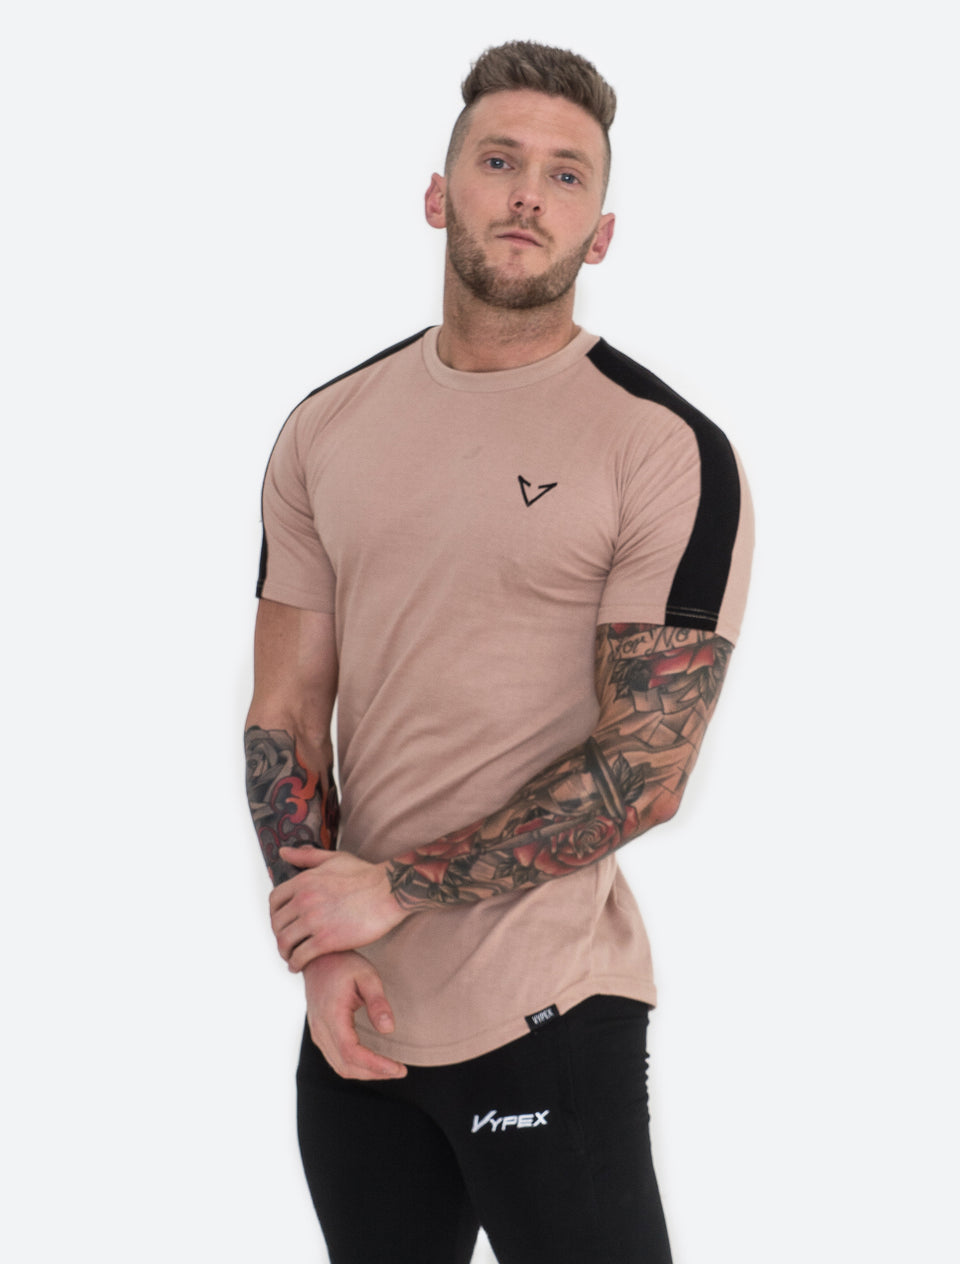 Vypex® Force Tapered T-Shirt - Sand/Black